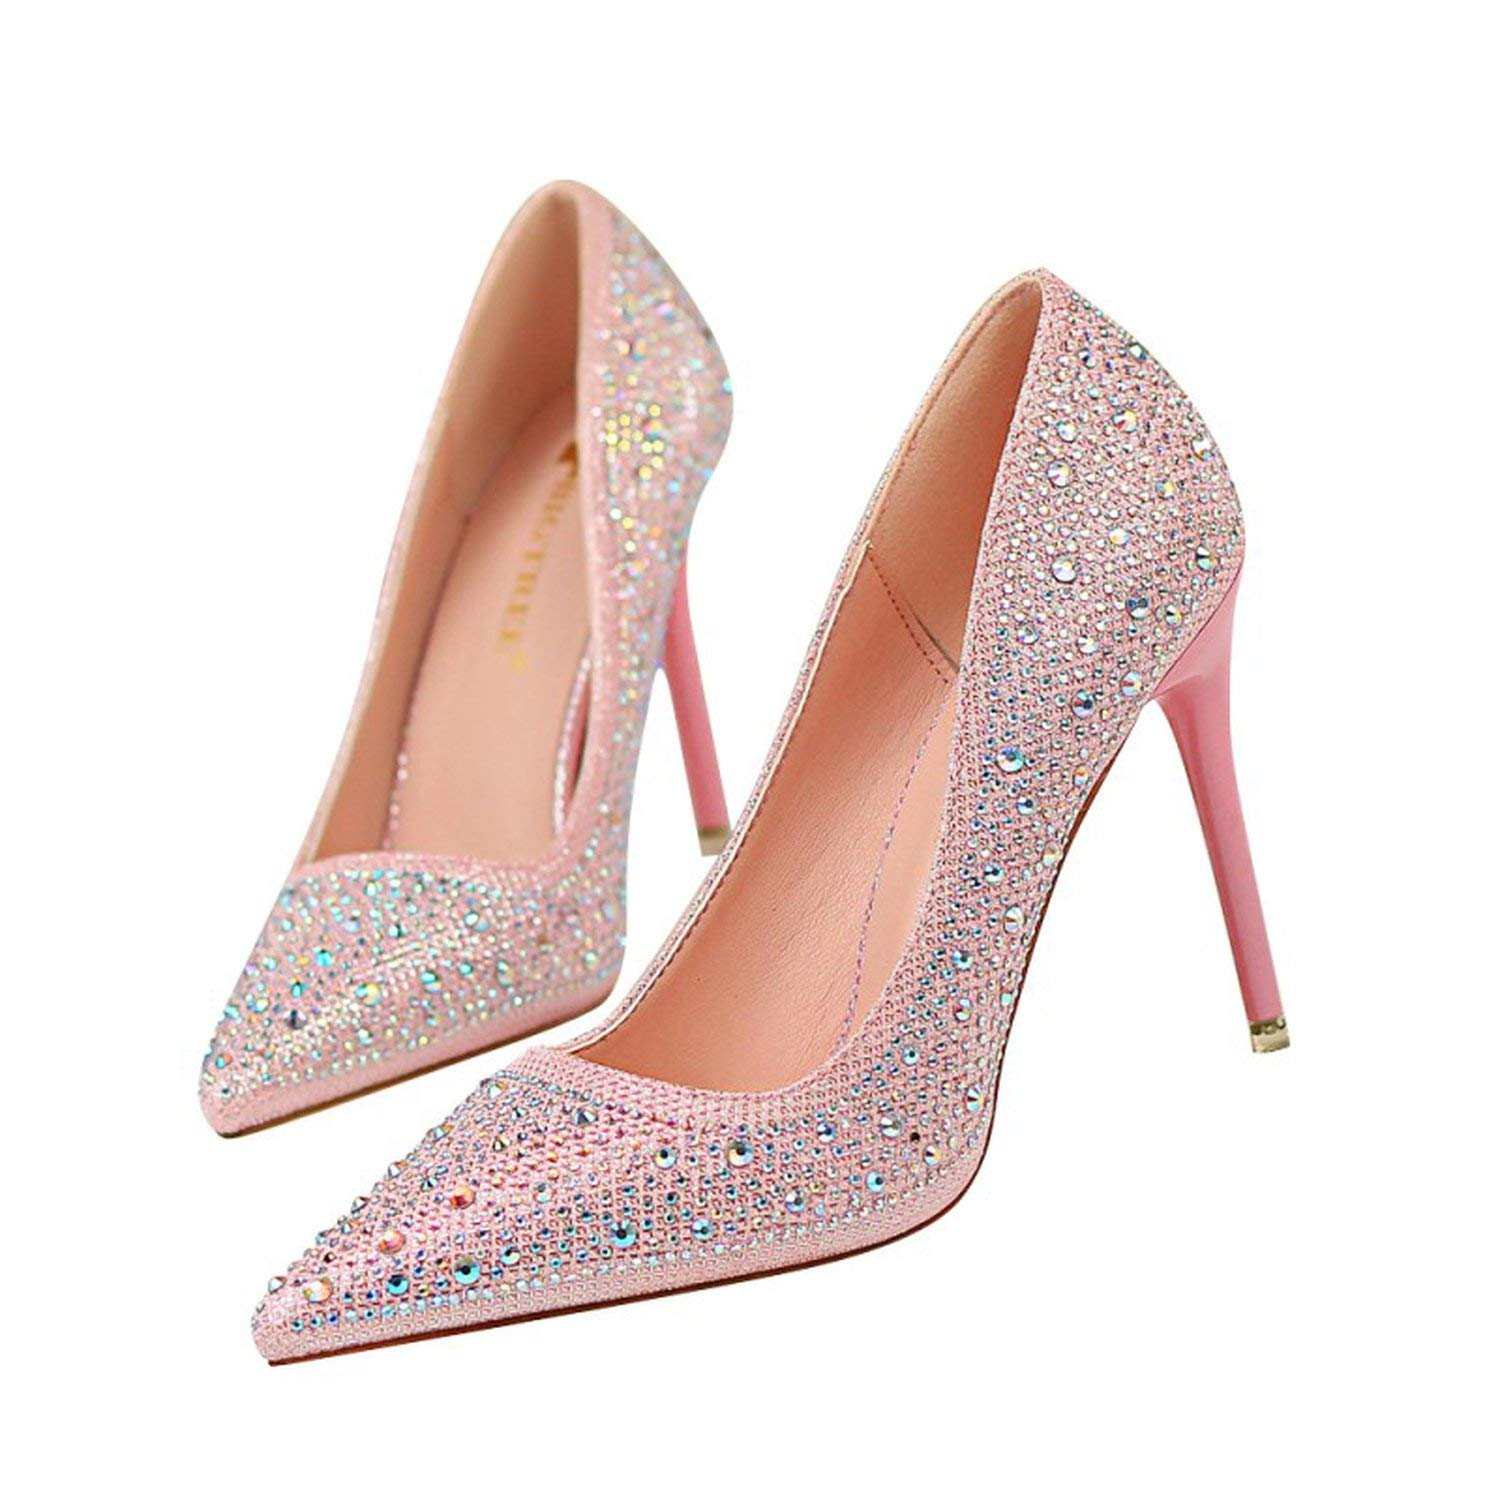 Pink coolemon 2019 Spring Wedding Party Women Pumps shoes Woman High Heels Female Crystal Bling Nightclub Stilettos Pointed Toe shoes